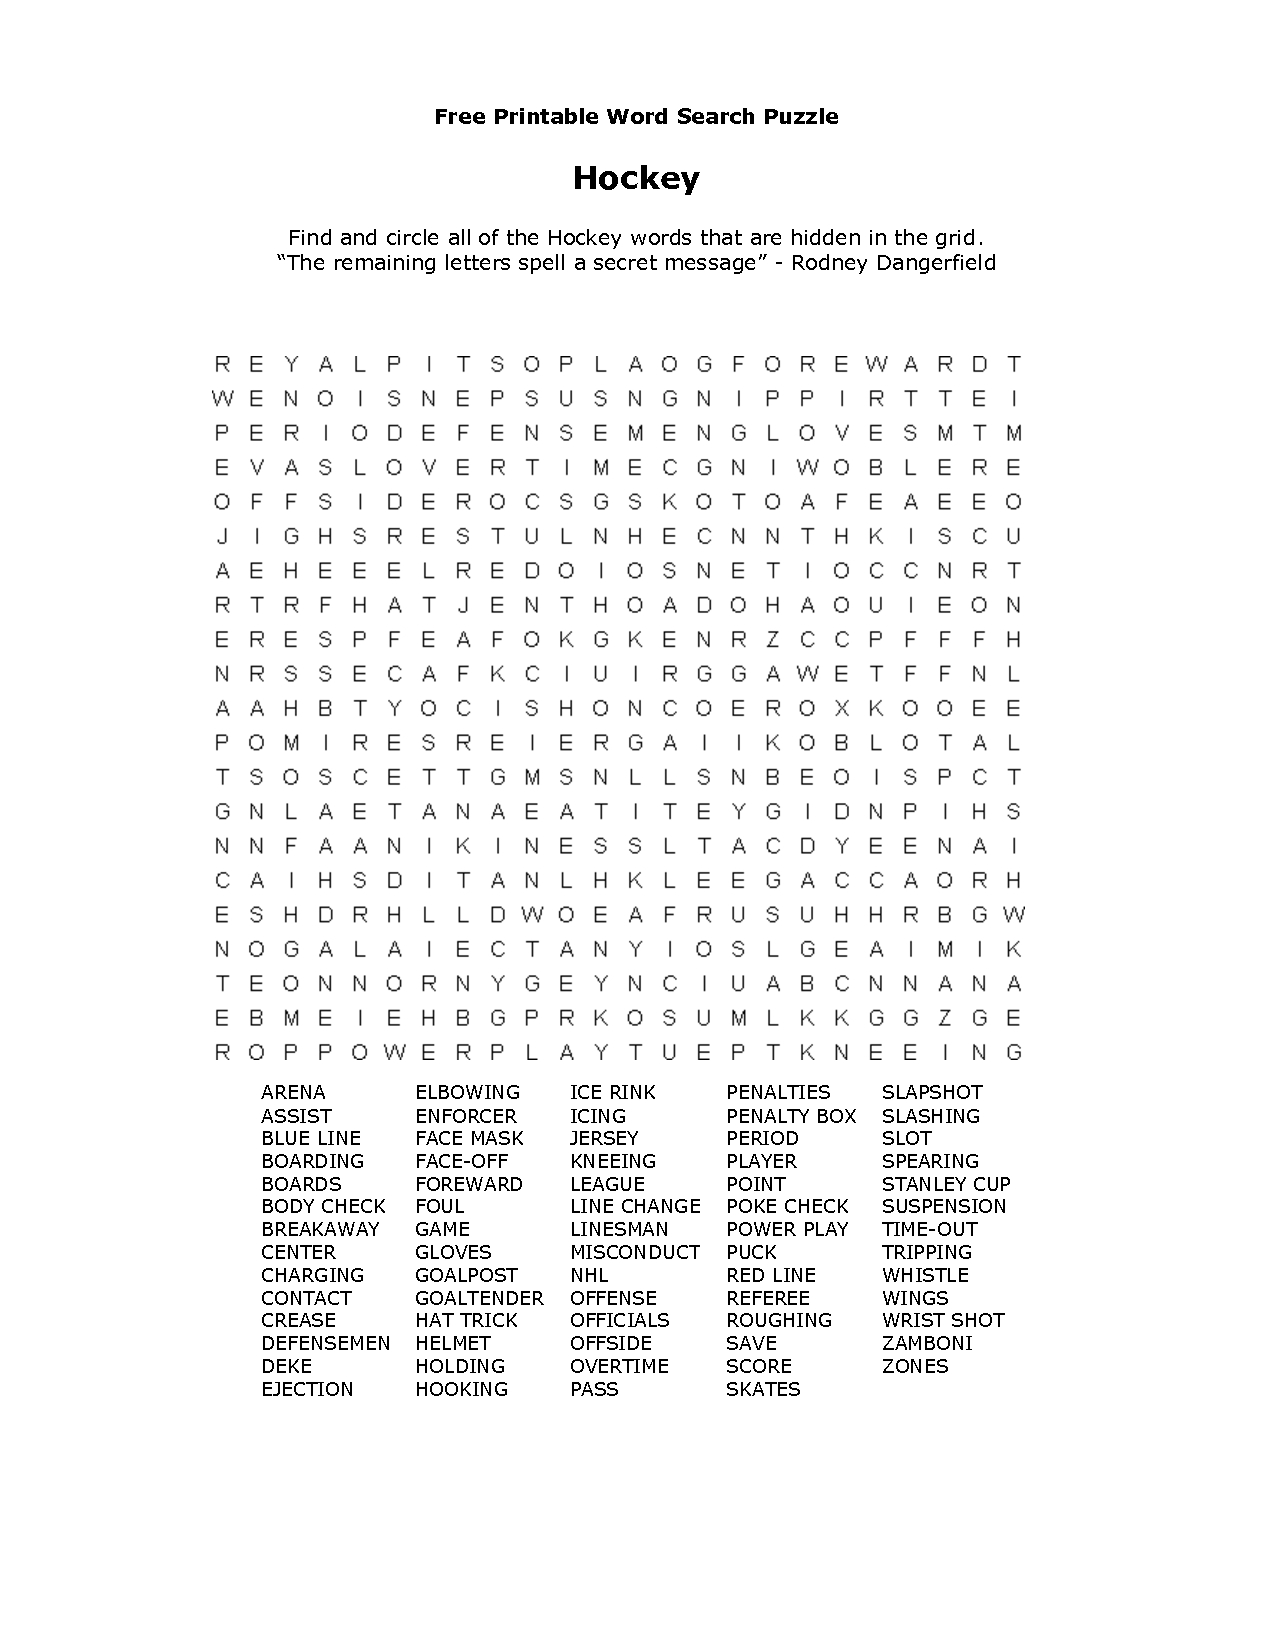 Free Printable Word Searches | طلال | Free Printable Word Searches - Free Printable Word Searches And Crossword Puzzles